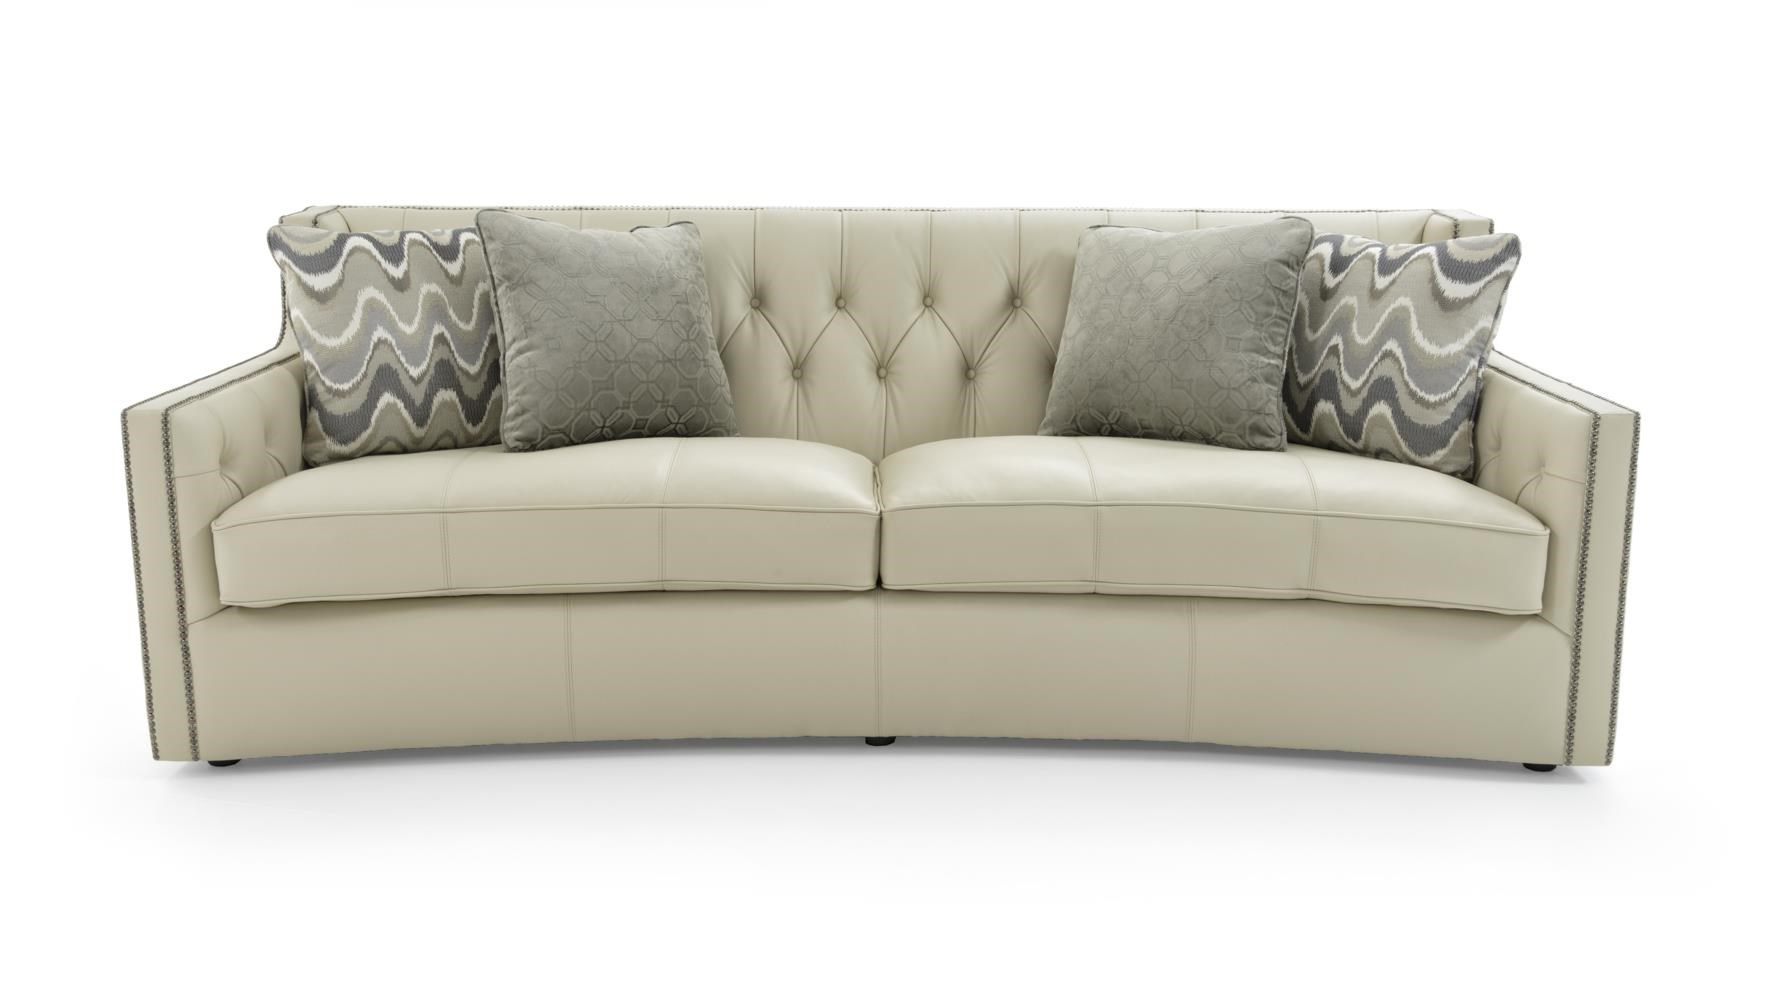 Sofa with Transitional Elegance